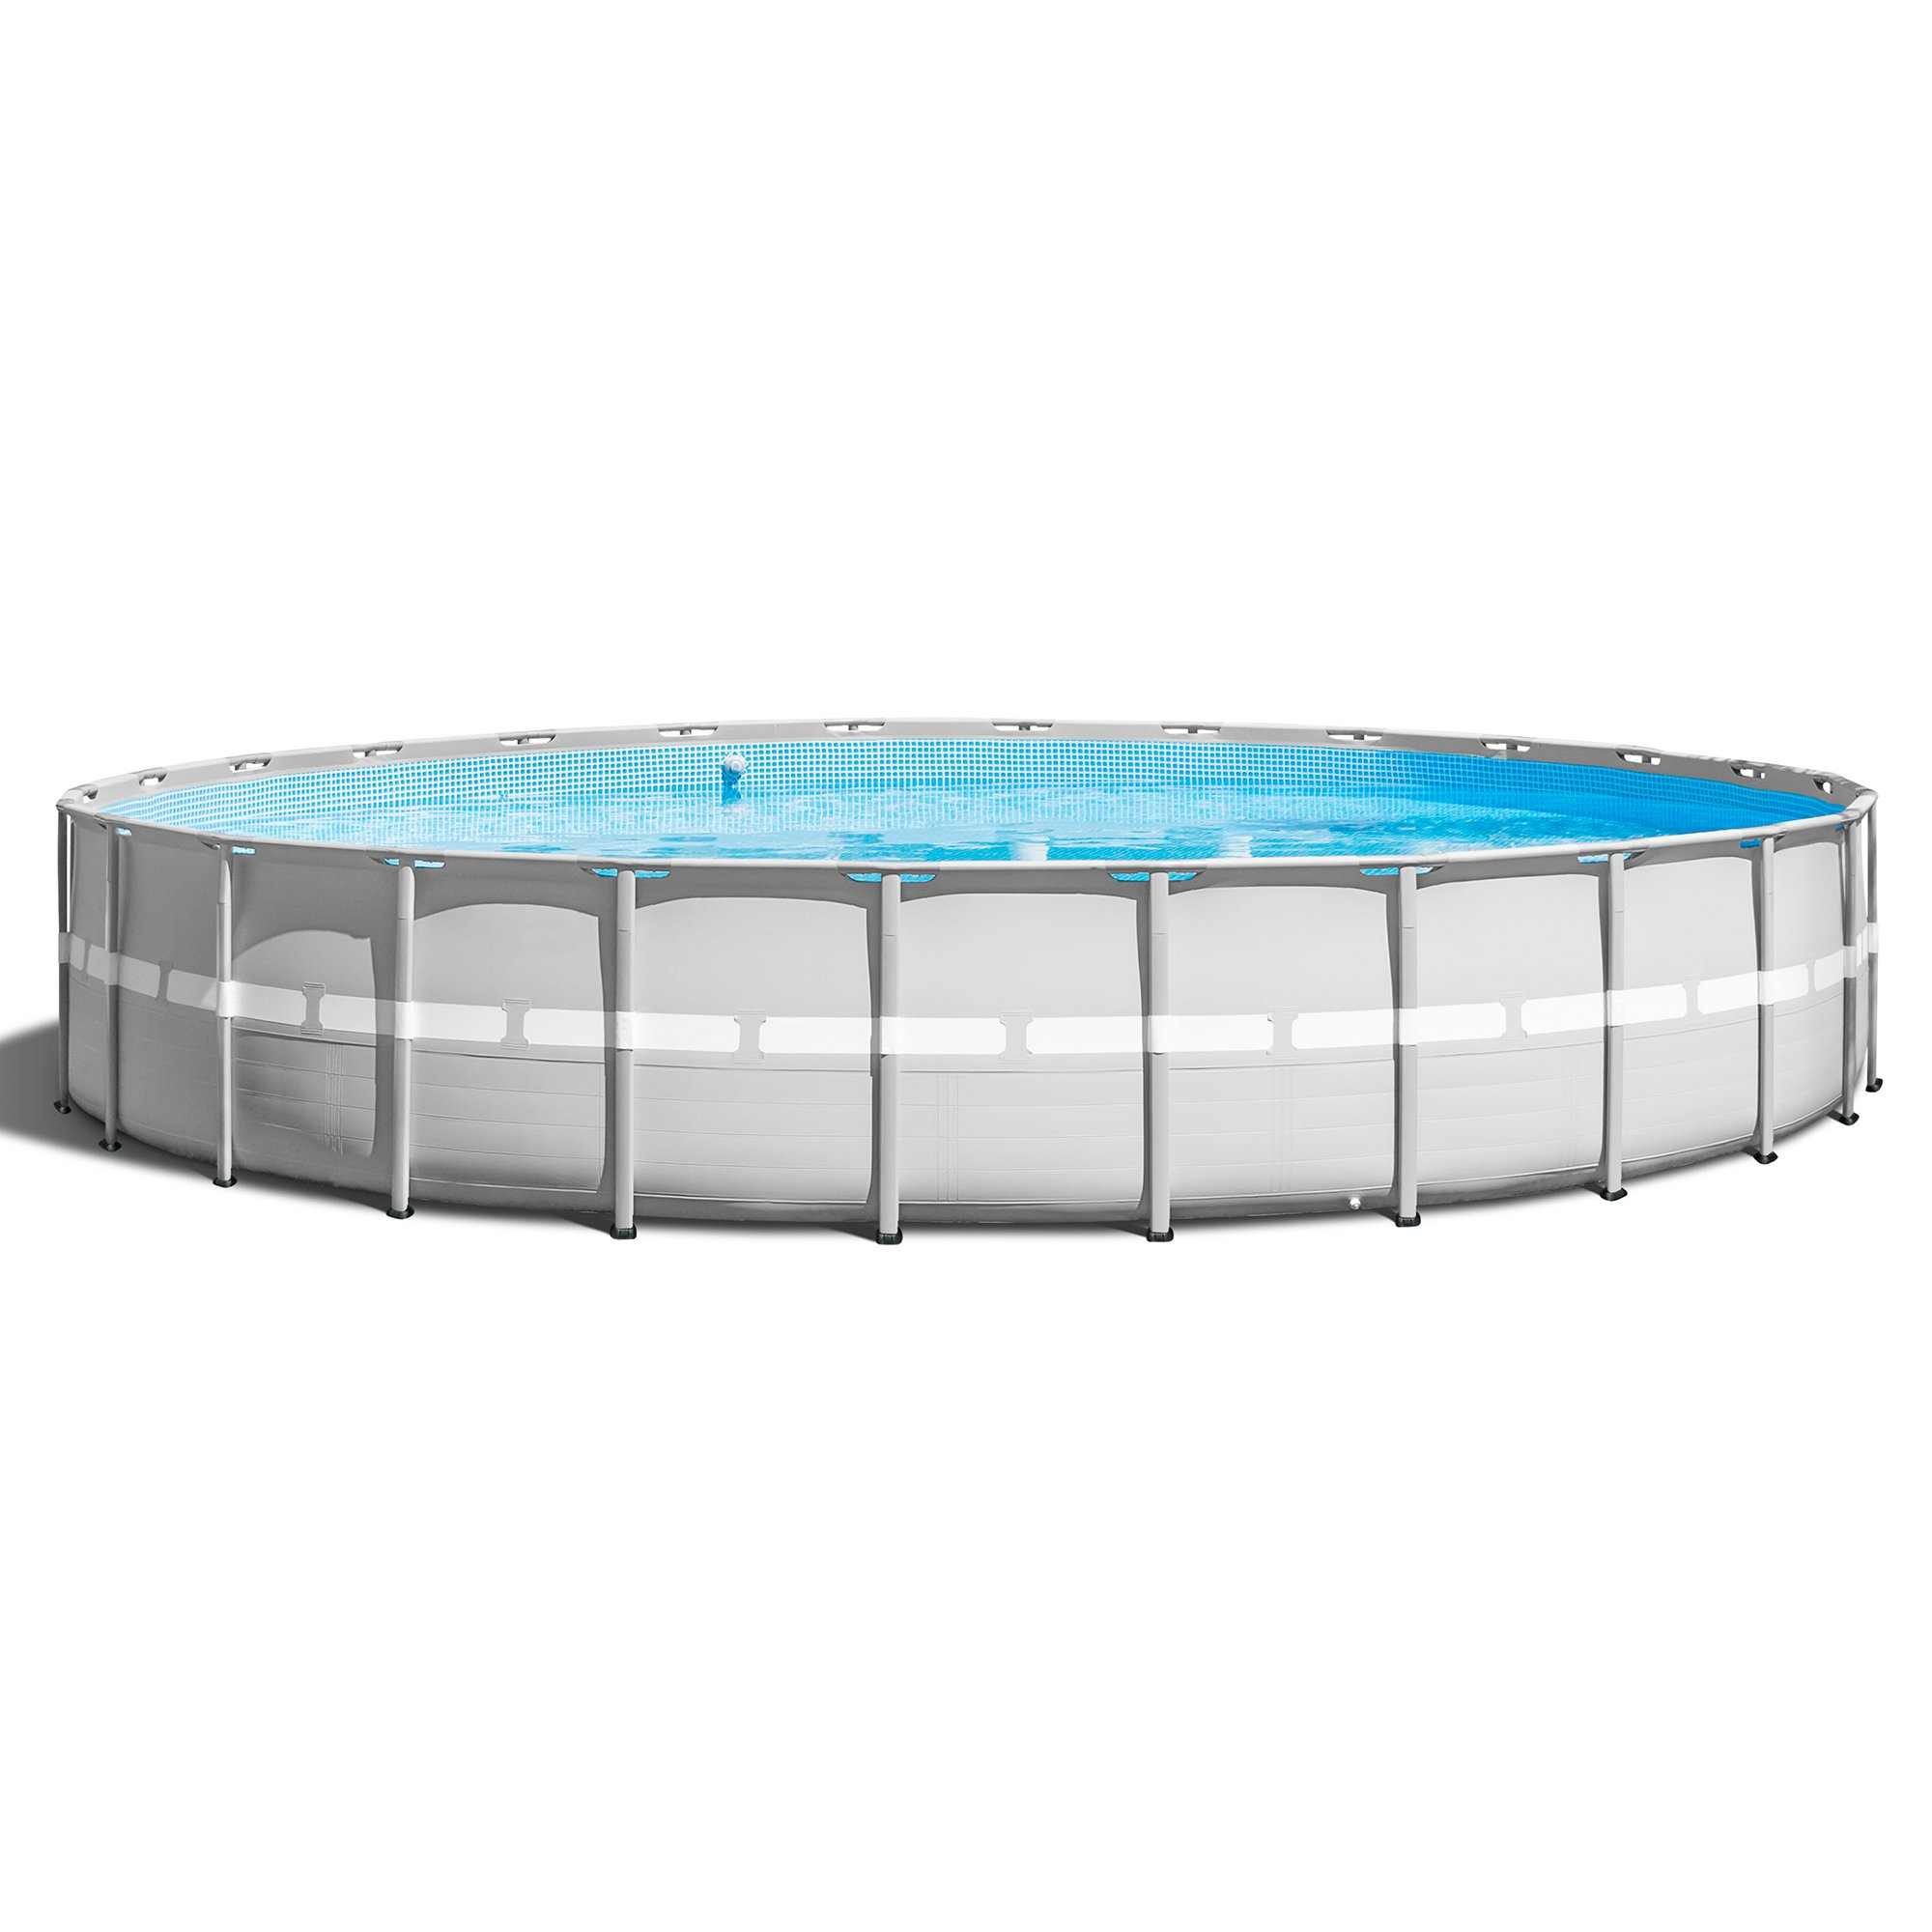 "Intex 26' x 52"" Ultra Frame Above Ground Swimming Pool Set with Pump & Ladder by Intex"